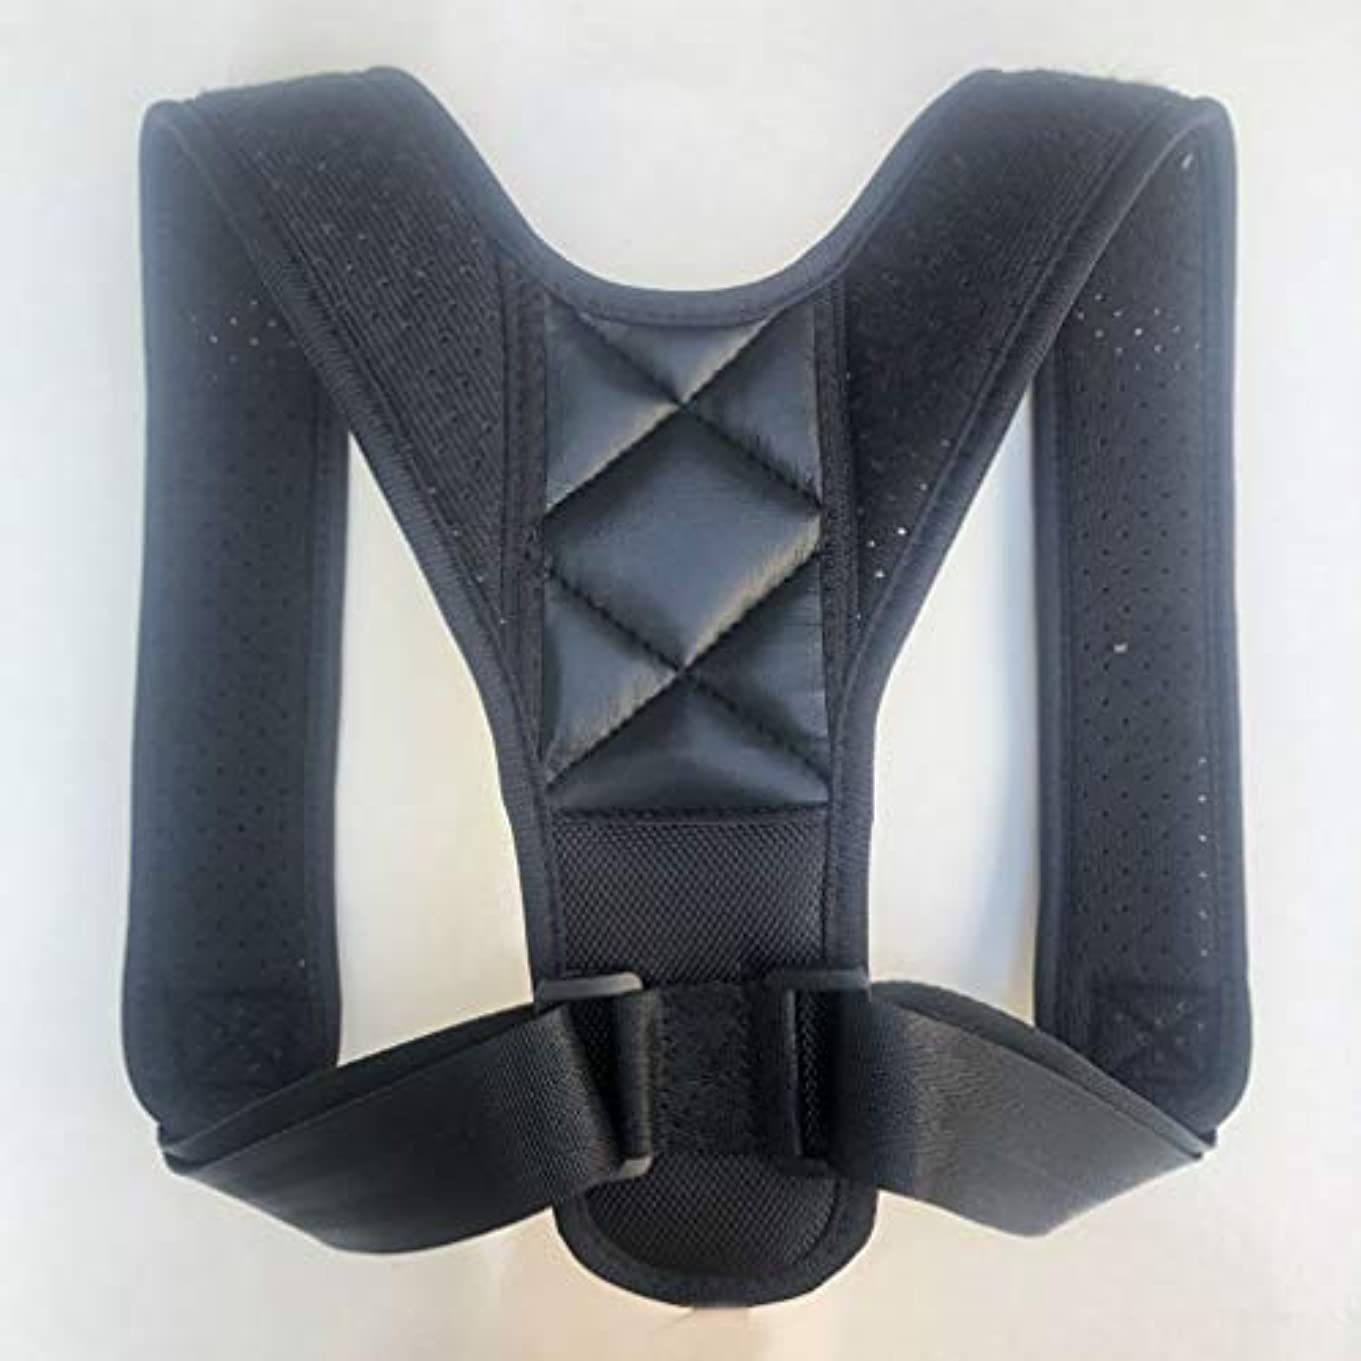 確かな集団的カートリッジUpper Back Posture Corrector Posture Clavicle Support Corrector Back Straight Shoulders Brace Strap Corrector